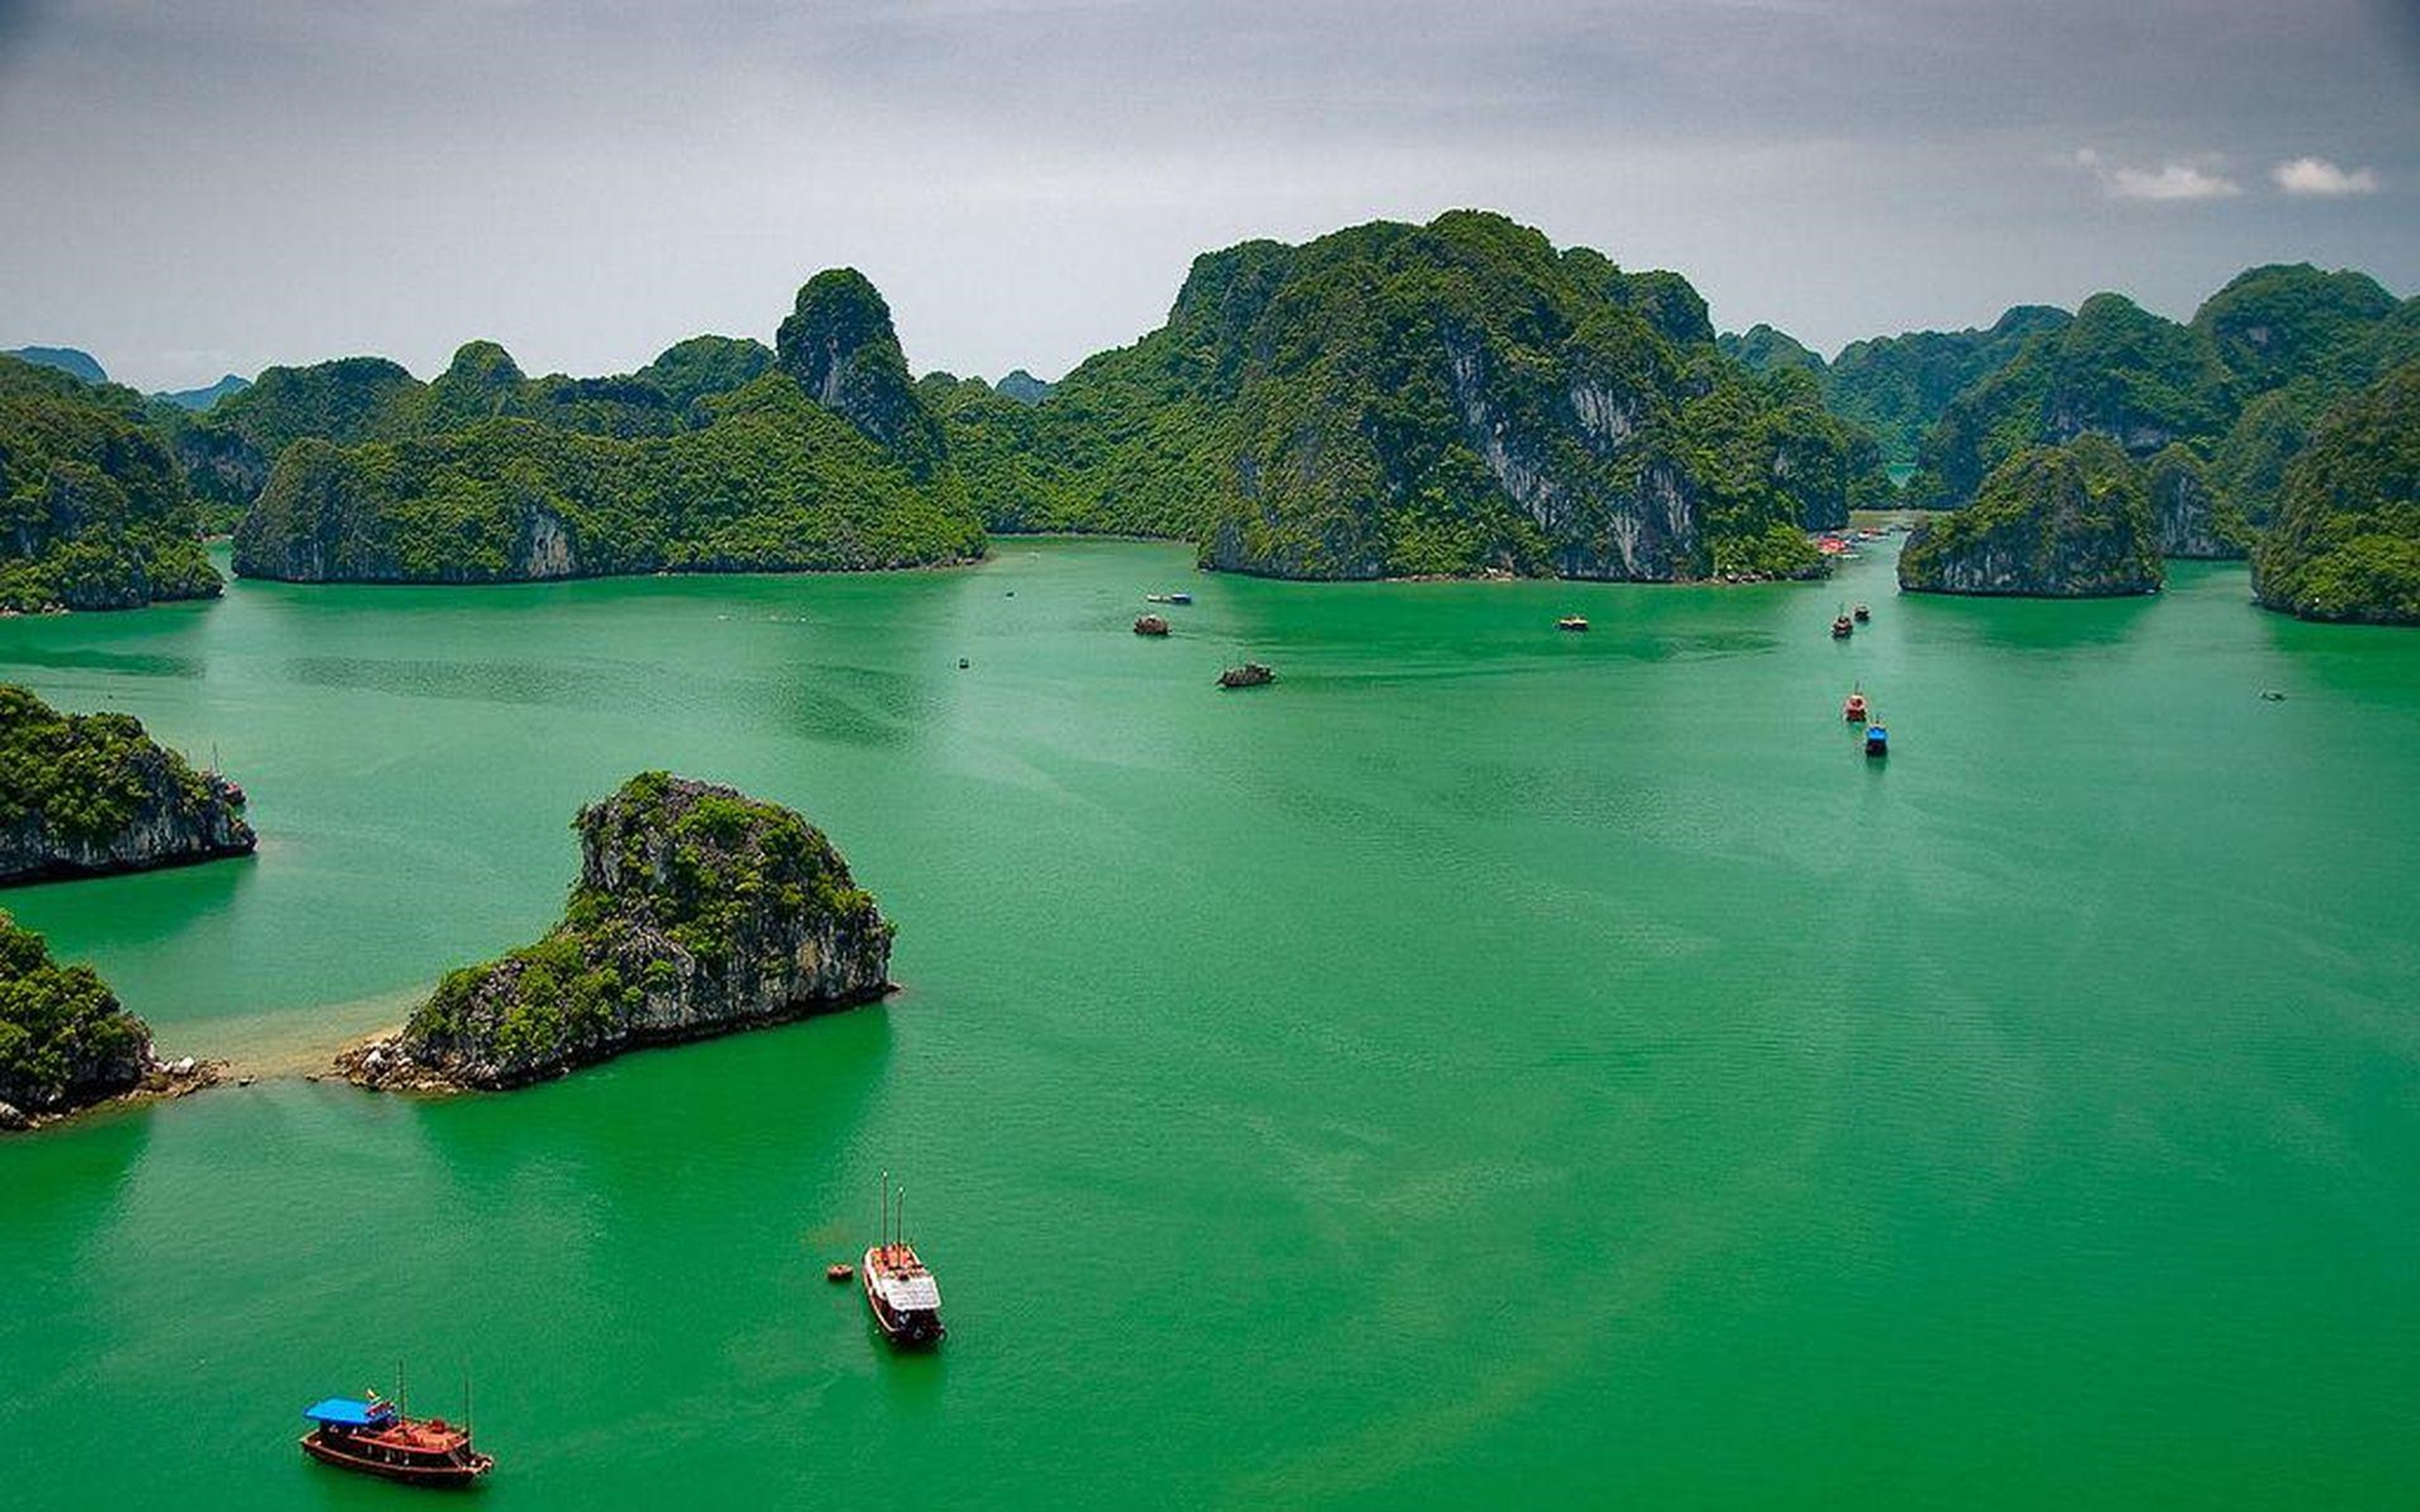 Free Animated Wallpaper For Android Tablet Ha Long Bay Vietnam 157163 Wallpapers13 Com